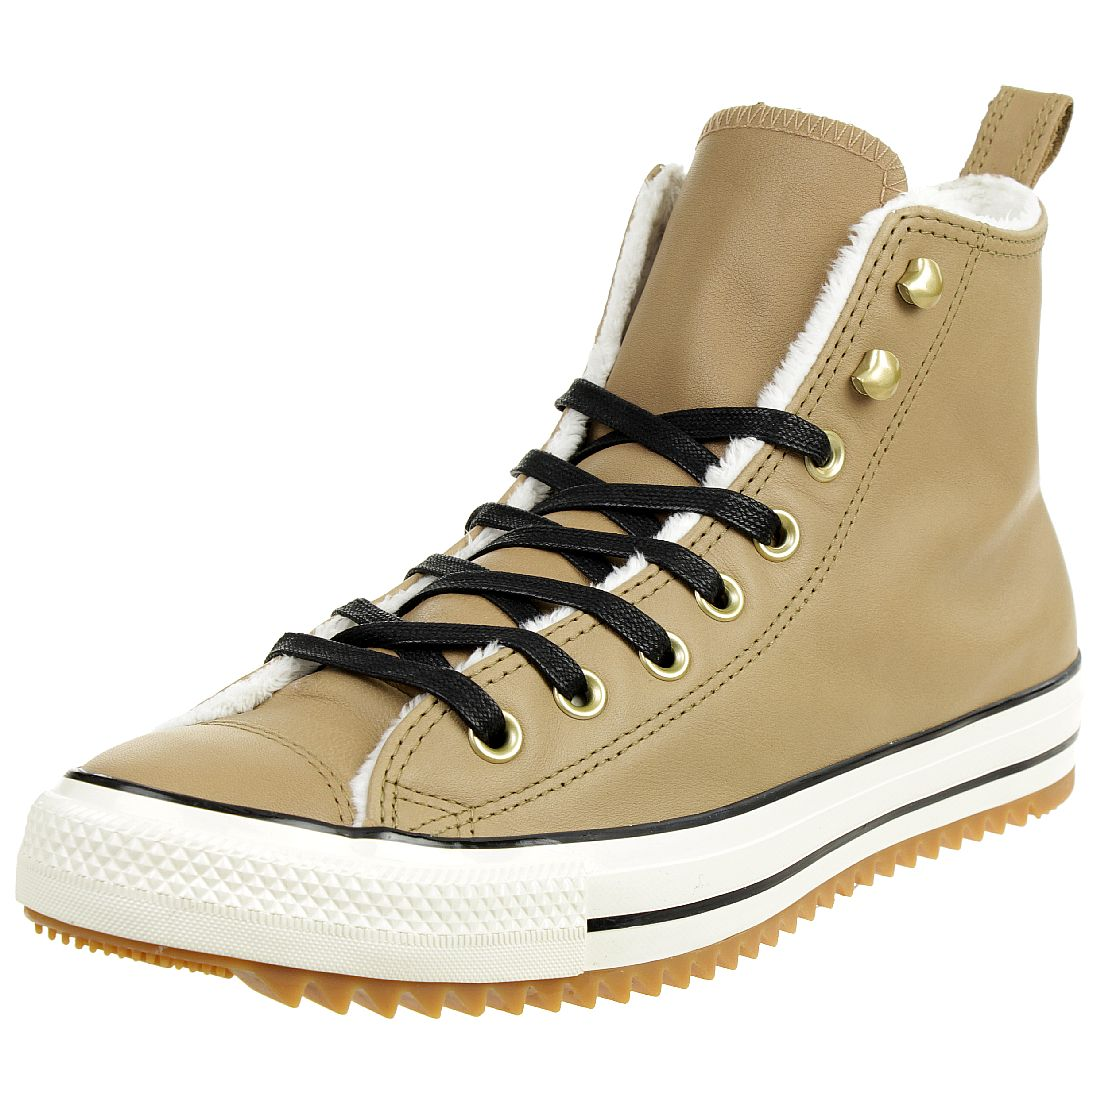 check out 719c9 a3f75 Converse C Taylor All Star HIKER BOOTS HI Chuck Sneaker ...